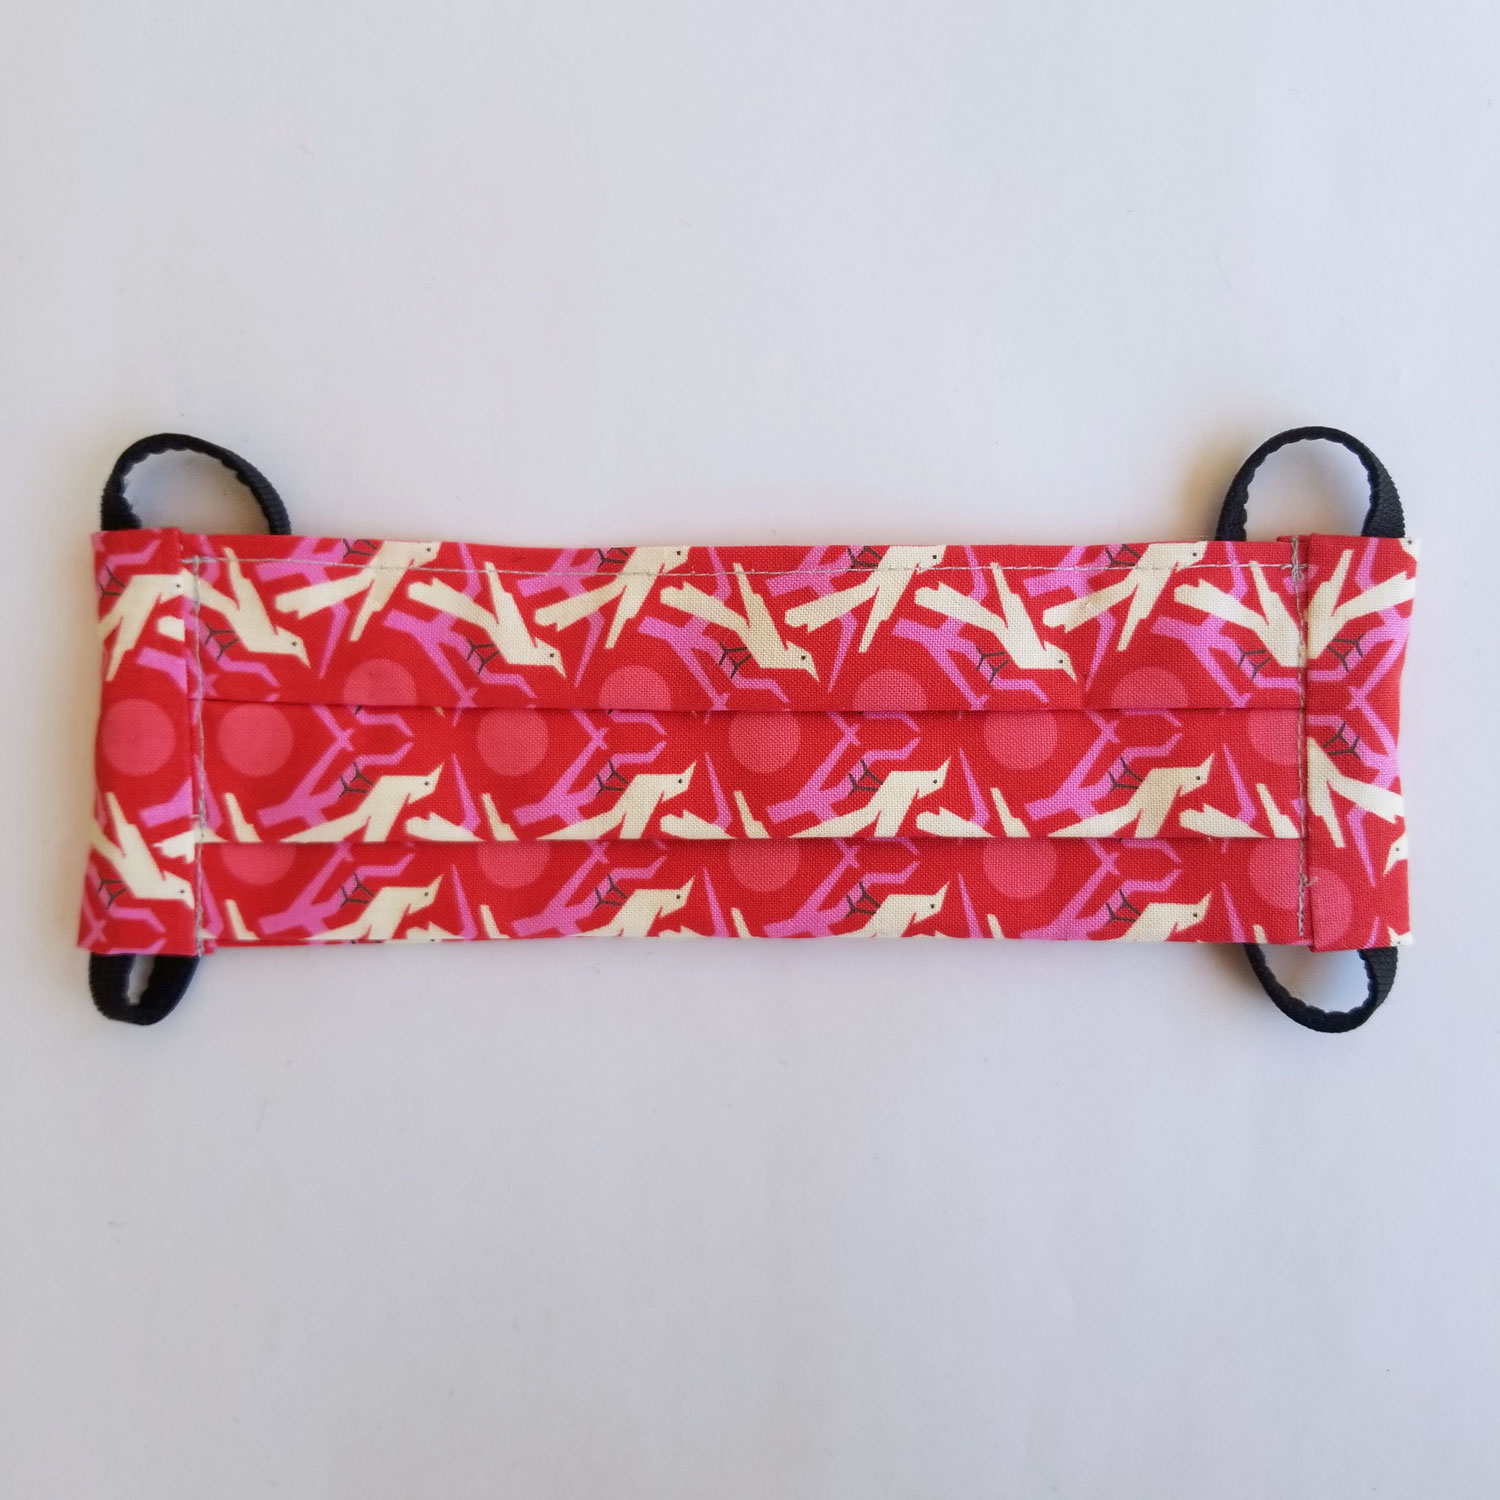 Handmade fabric mask in bright pink print with birds